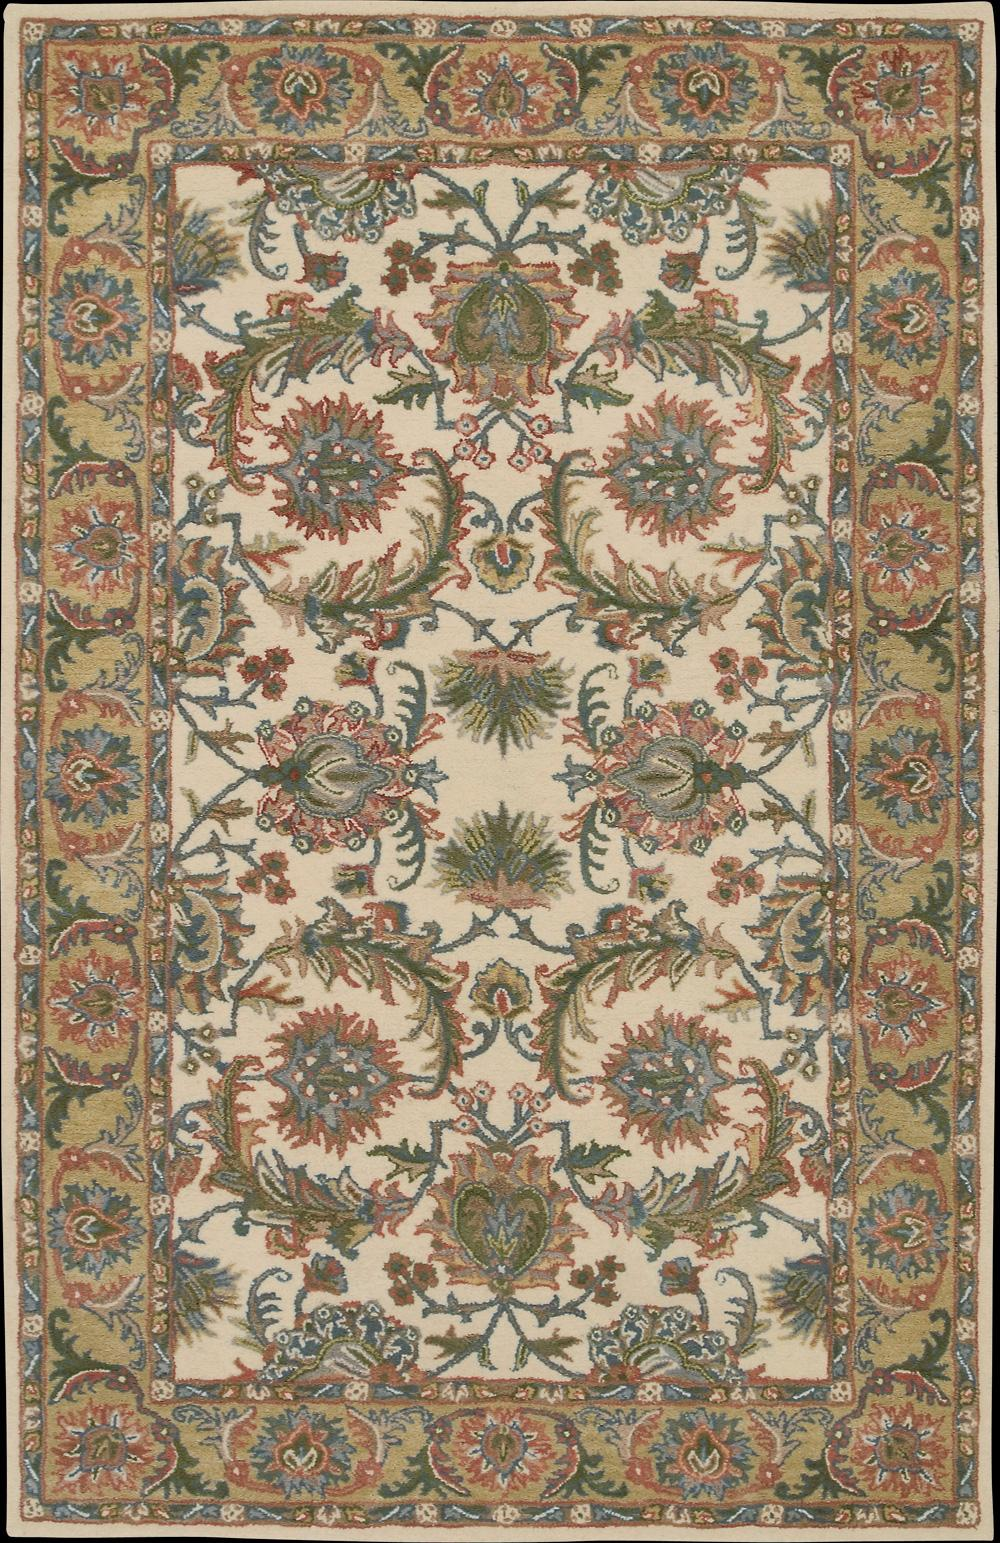 Nourison India House Area Rug 5' x 8' - Item Number: 33847